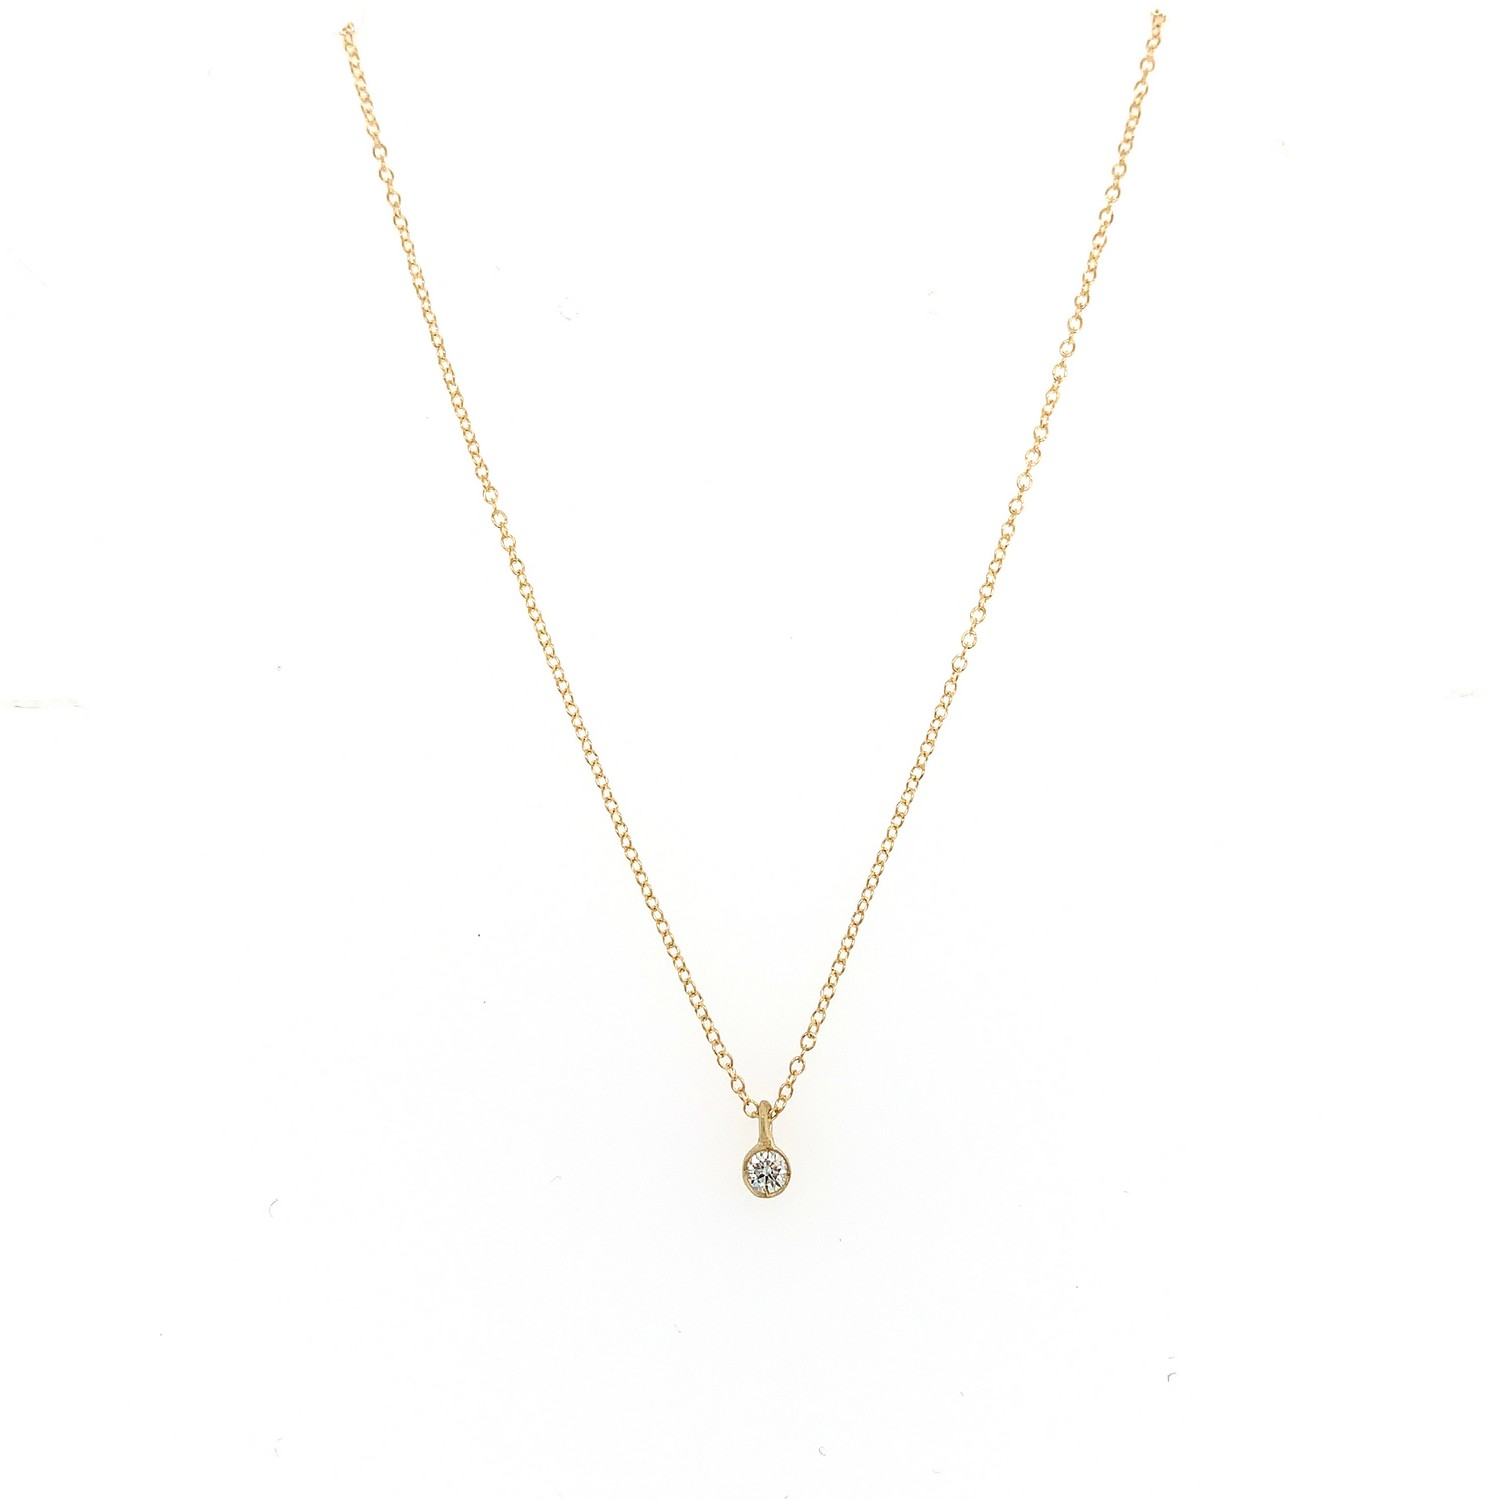 Just a Diamond Gold Pendant with a 7 point diamond.